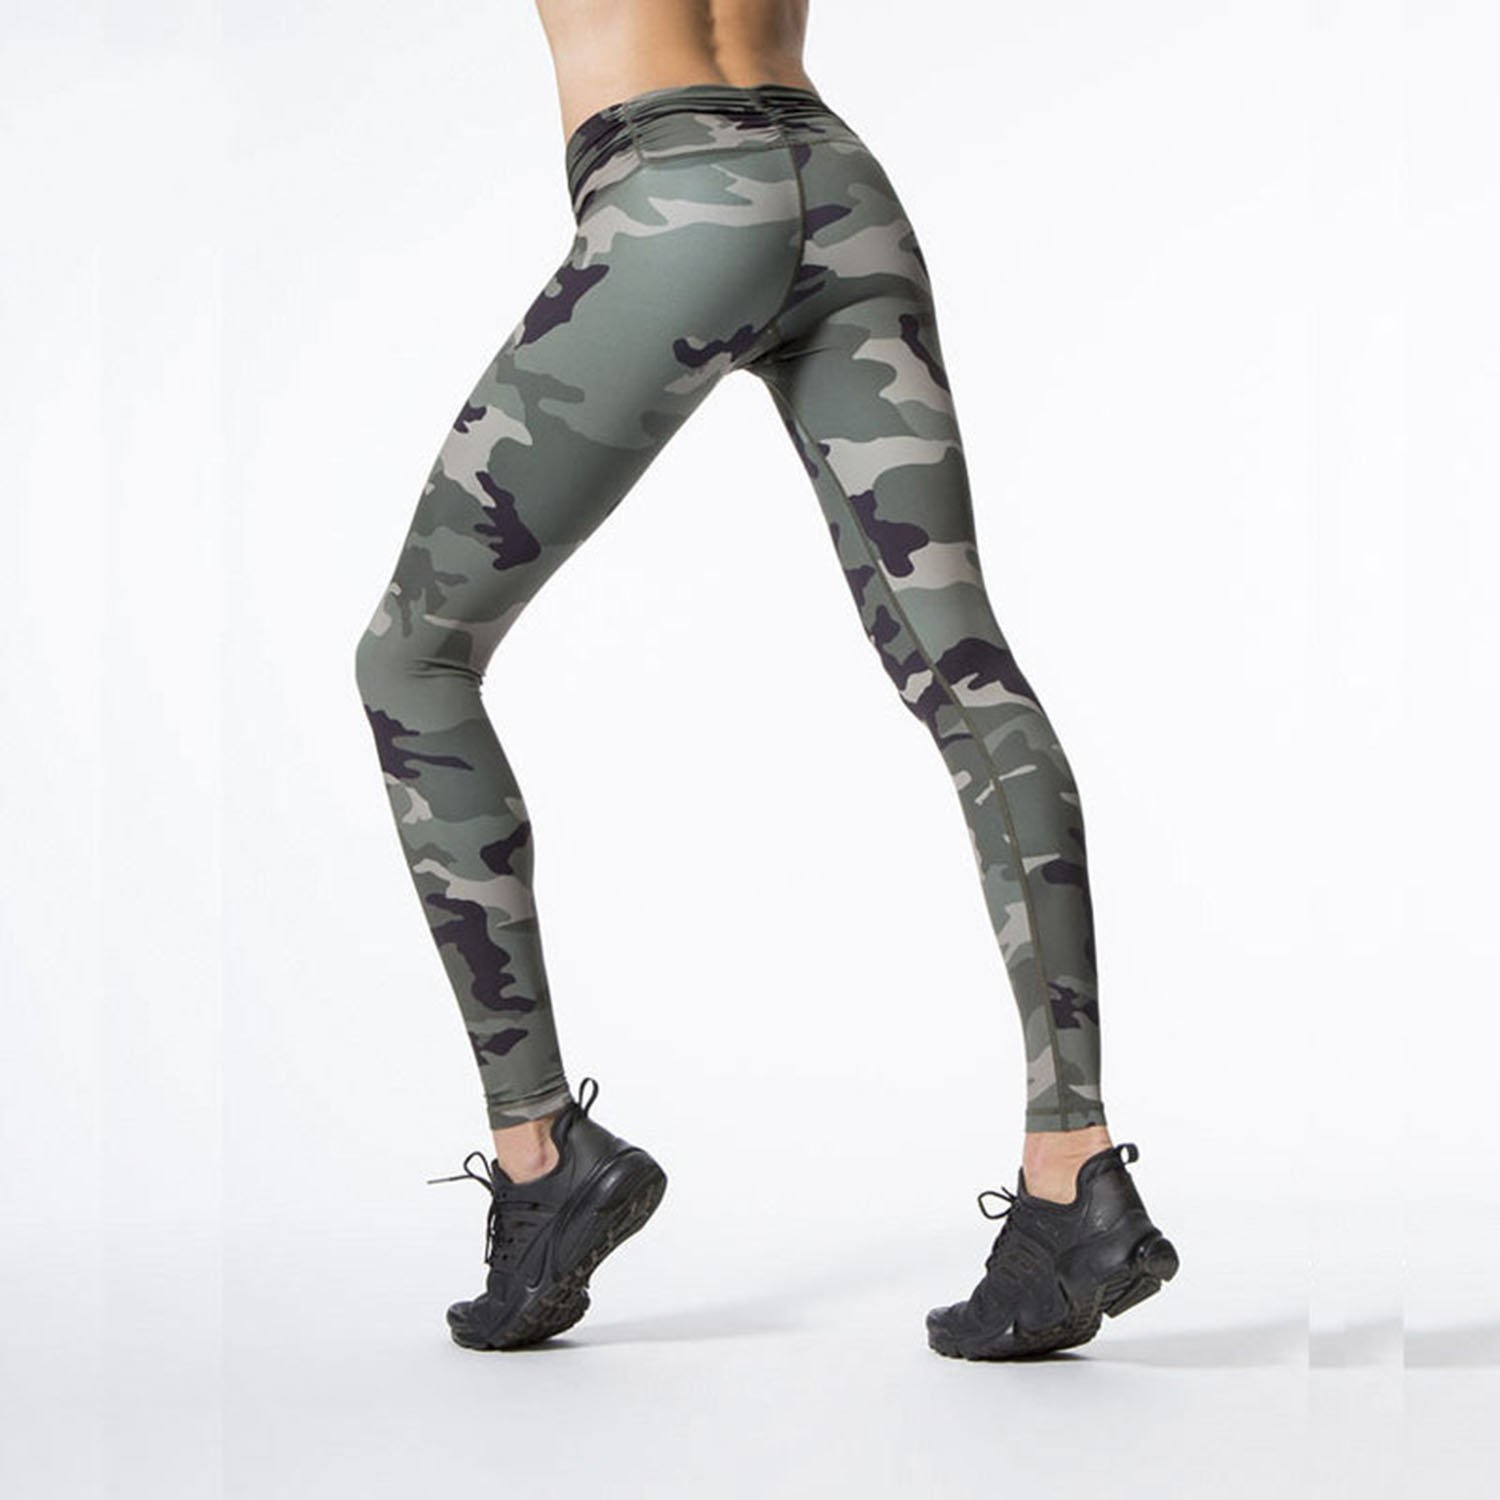 f3a65af46a150 Amazon.com: MVNTOO Women Yoga High-Waist Pant Power Flex Fitness Camouflage Leggings  Running Sport: Clothing